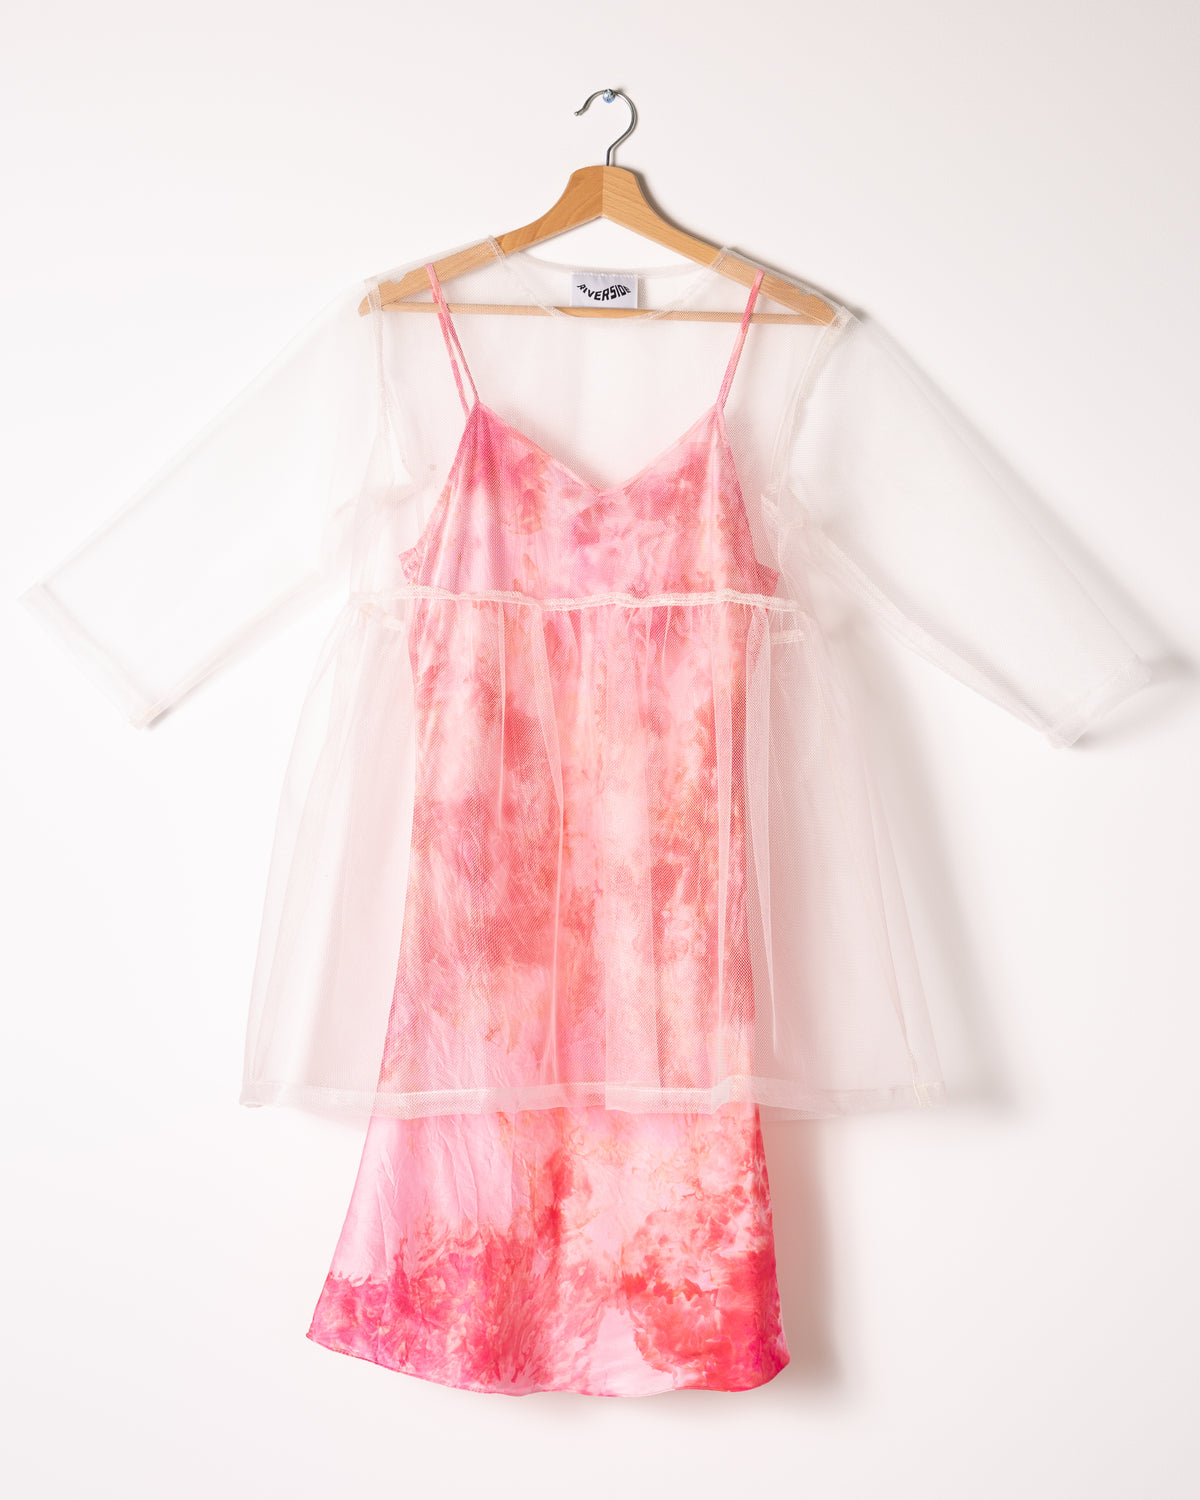 Sheer Dress - riverside tool & dye